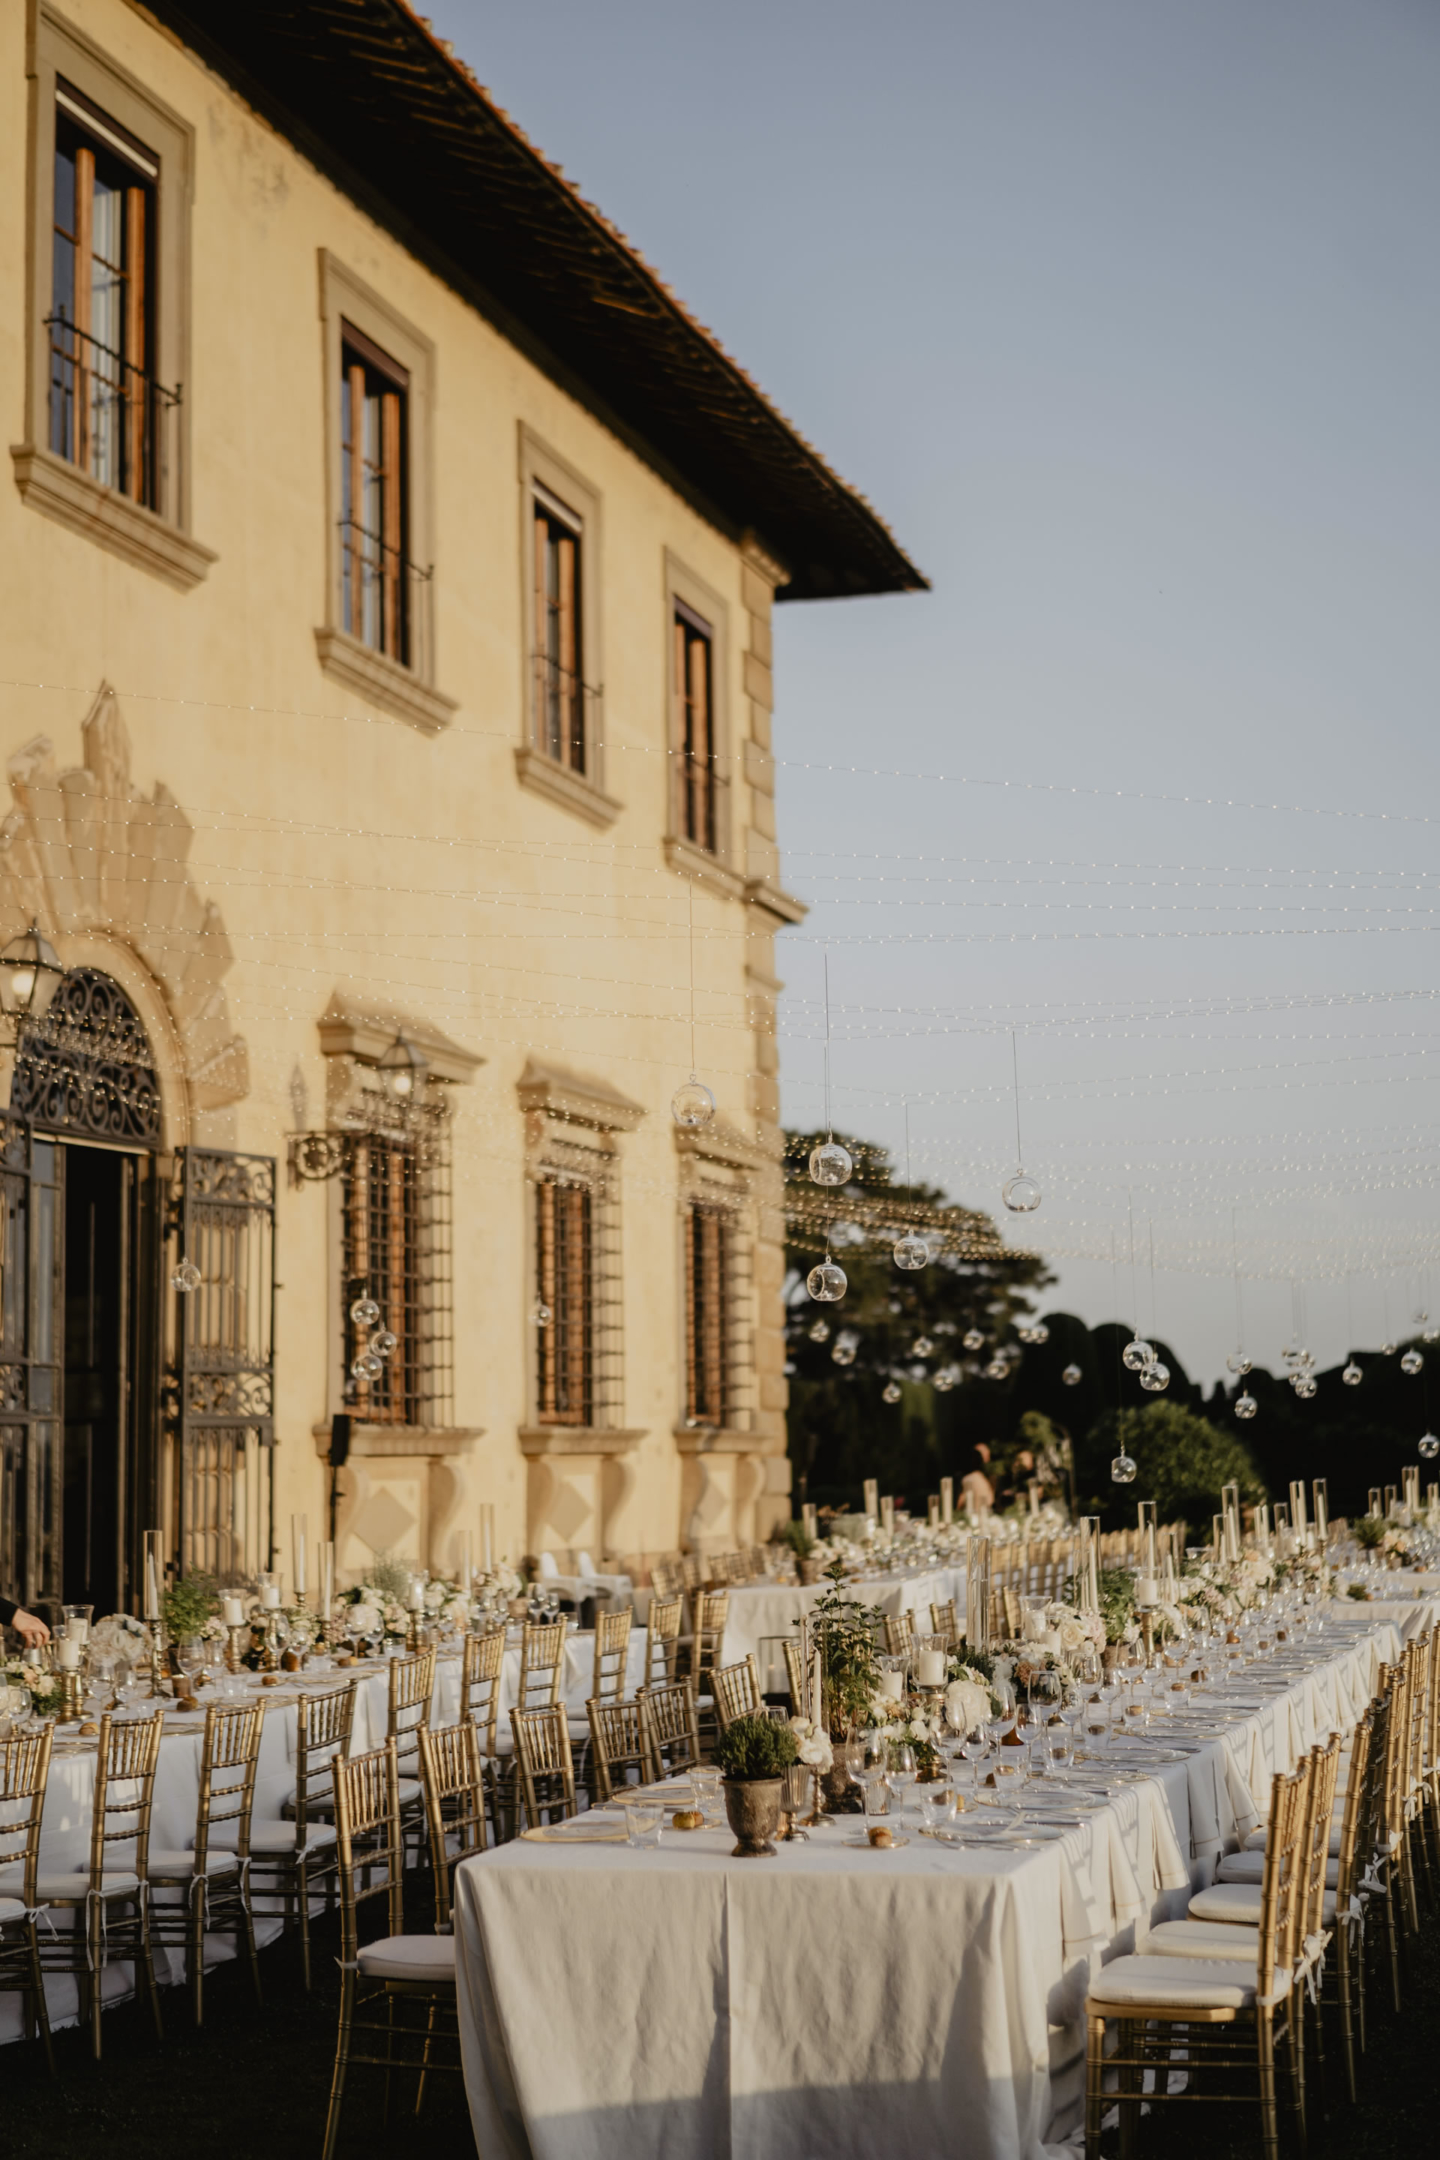 - 71 :: From Los angeles to Florence: a glamour asiatic wedding :: Luxury wedding photography - 70 ::  - 71